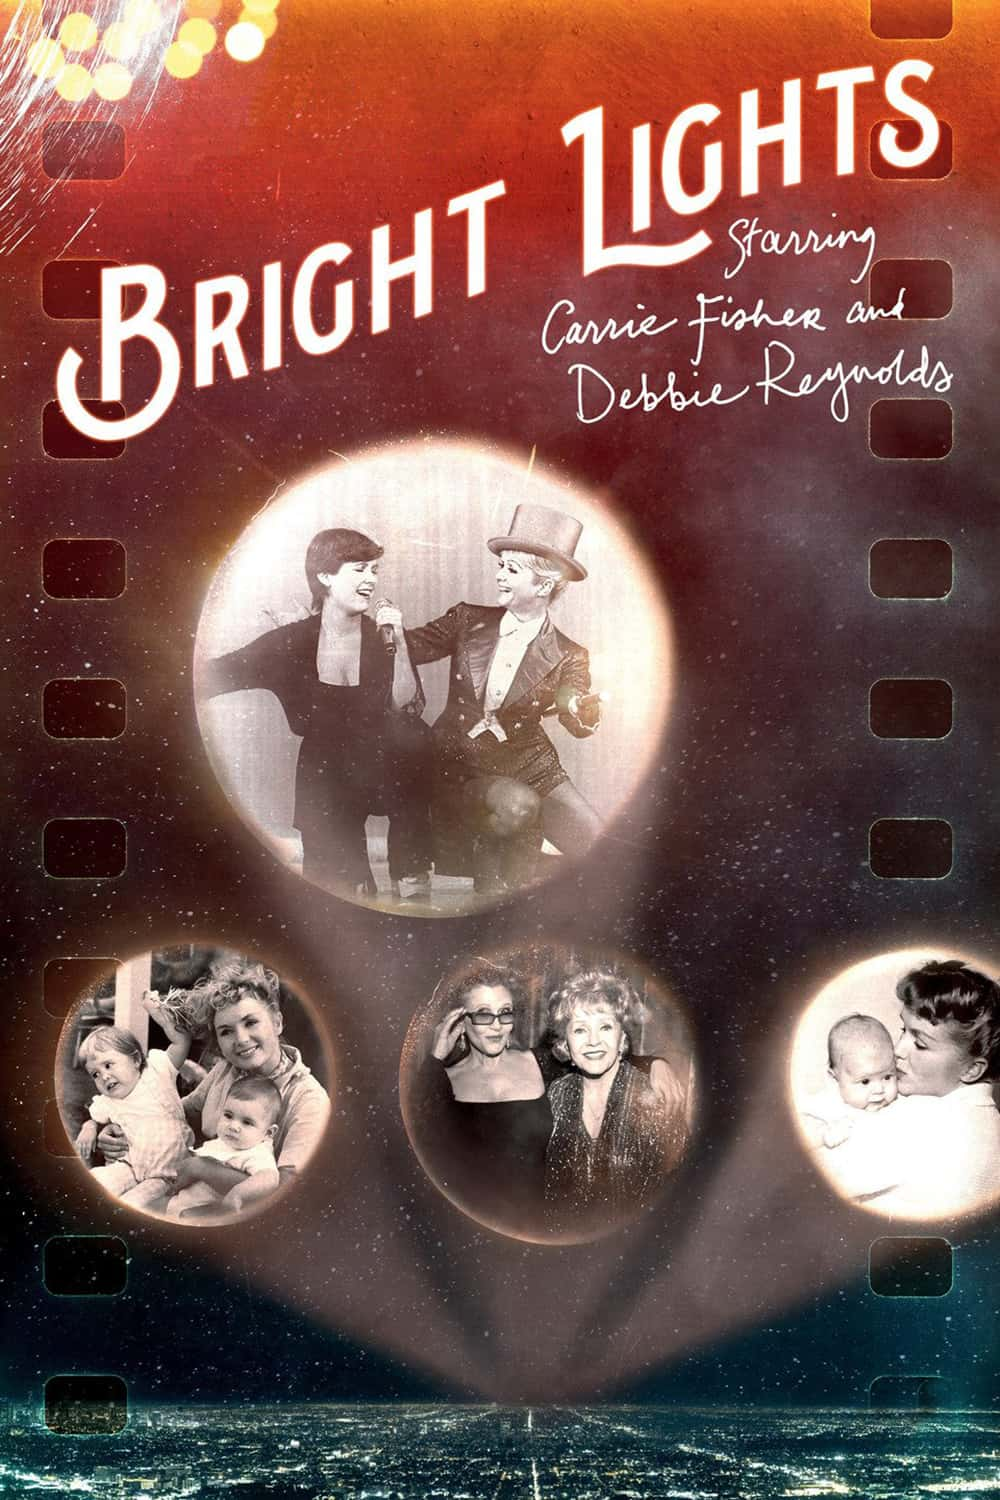 Bright Lights: Starring Carrie Fisher and Debbie Reynolds, 2016